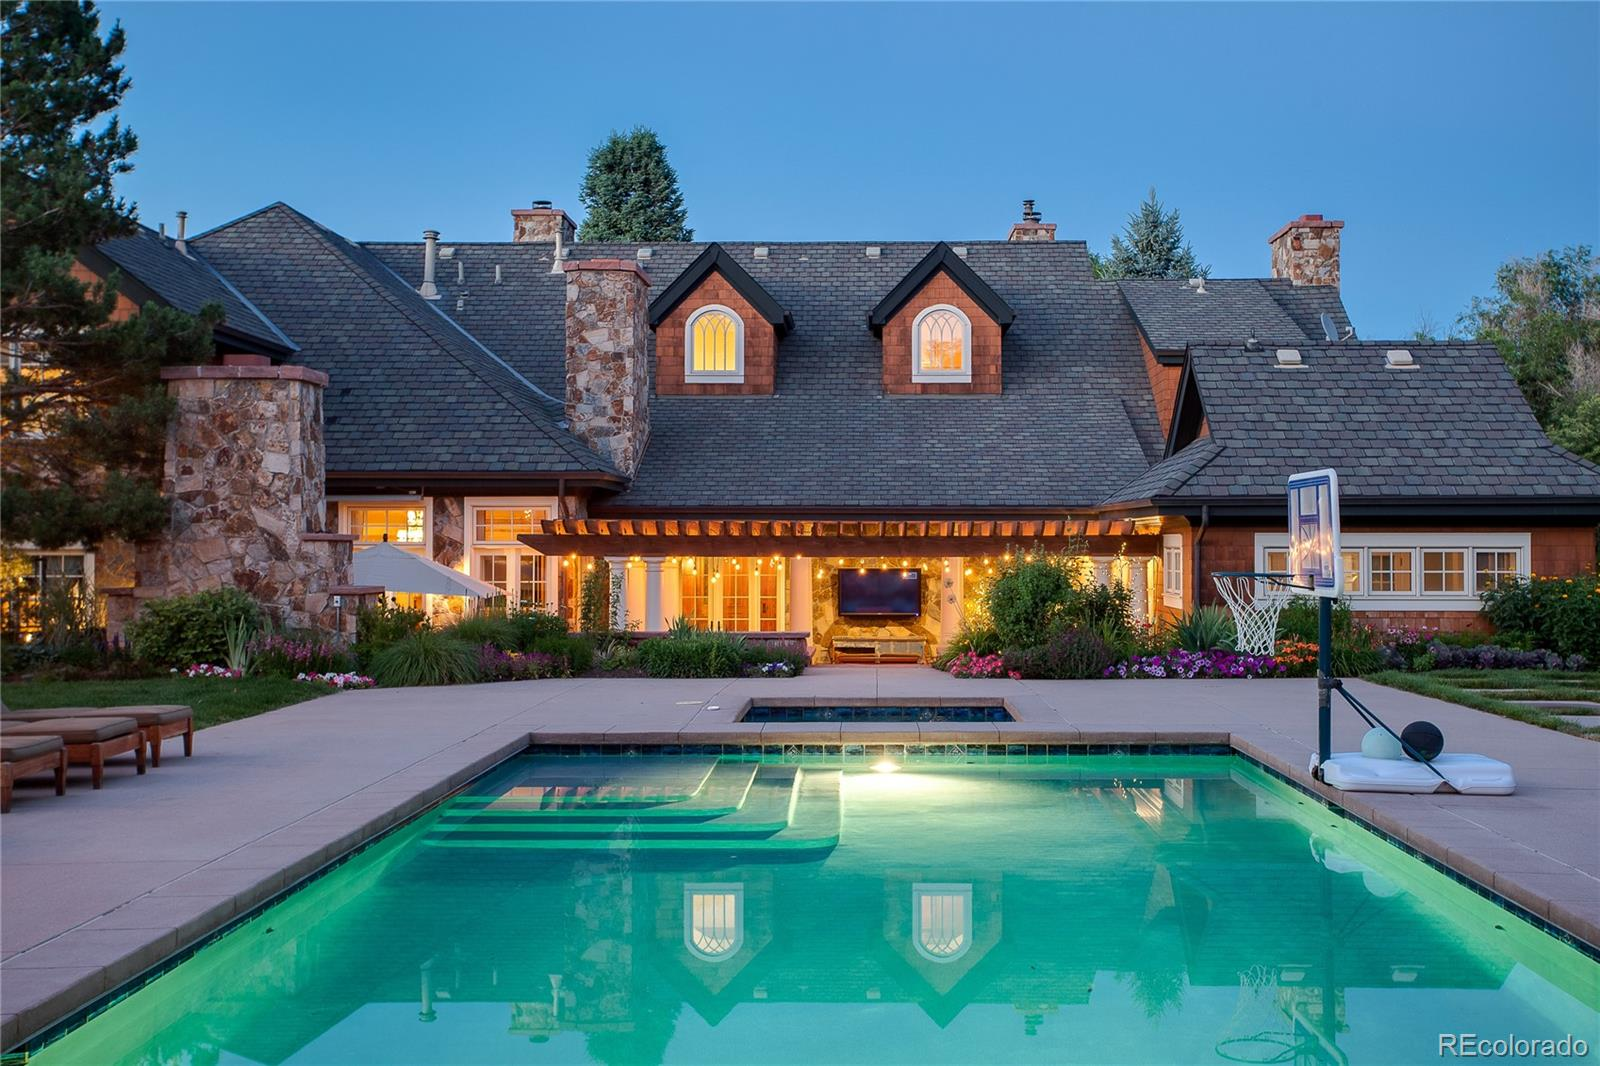 4301 S Lafayette Street, Cherry Hills Village, CO 80113 - Cherry Hills Village, CO real estate listing